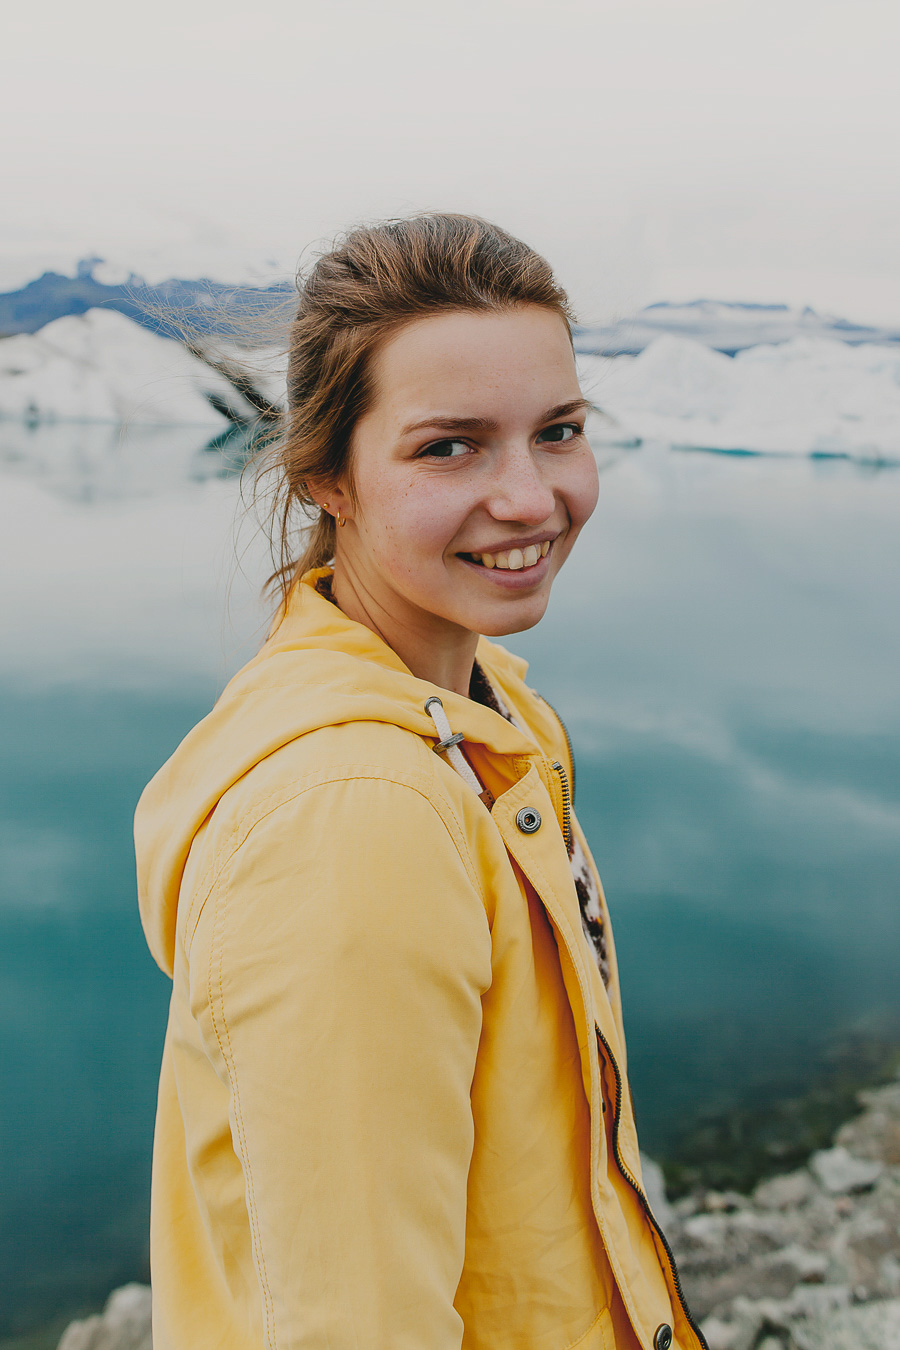 Portrait image of girl in Iceland